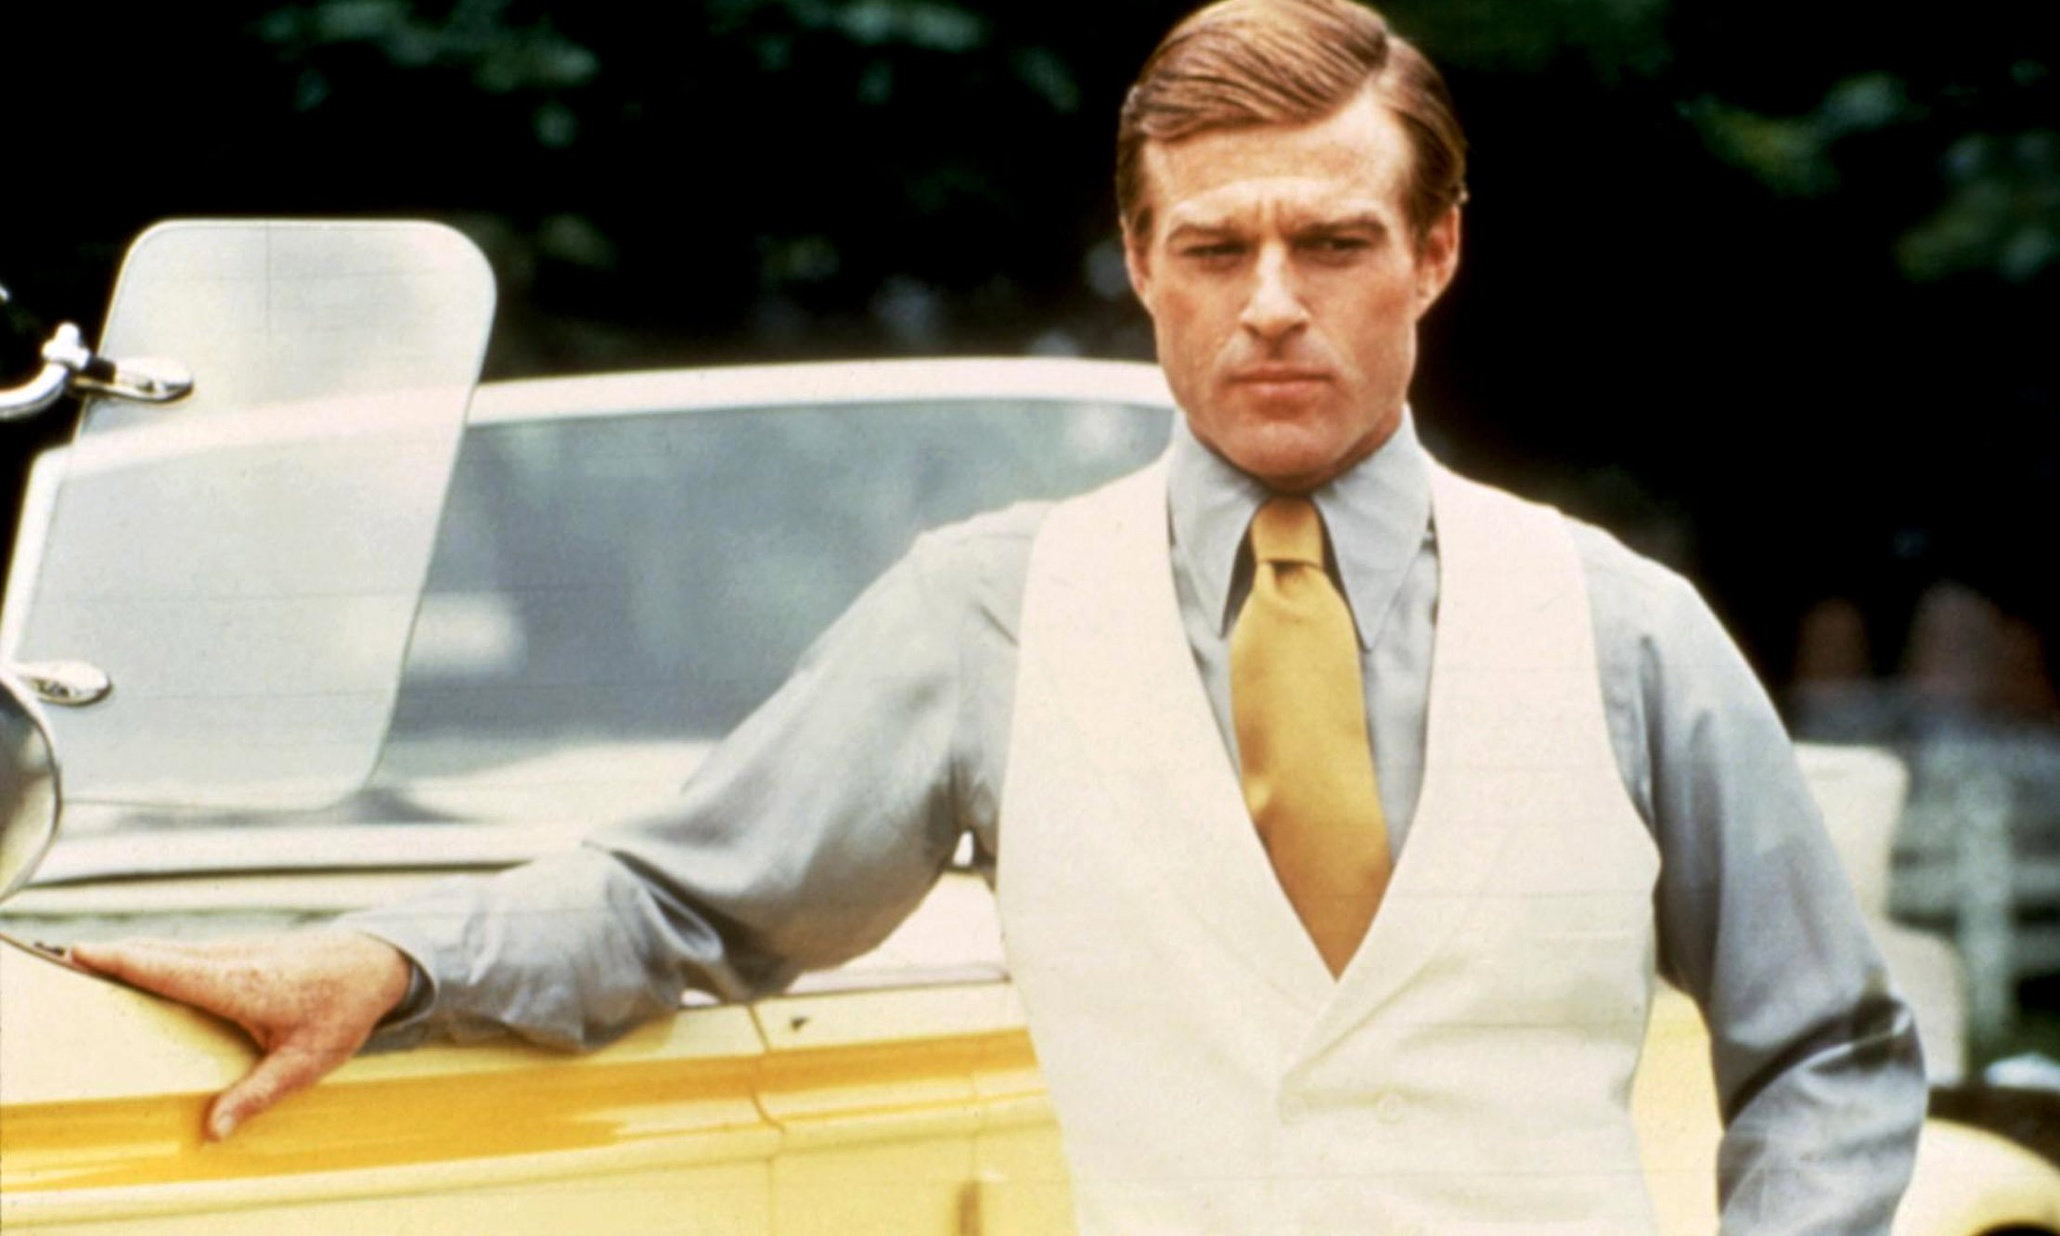 gatsby as a tragic hero essay Jay gatsby is the tragic hero of the novel this is because he believes there is a logical purpose for his actions, yet his actions lead to pain and disaster he had followed the american dream, being poor and then working until he becomes rich and successful.